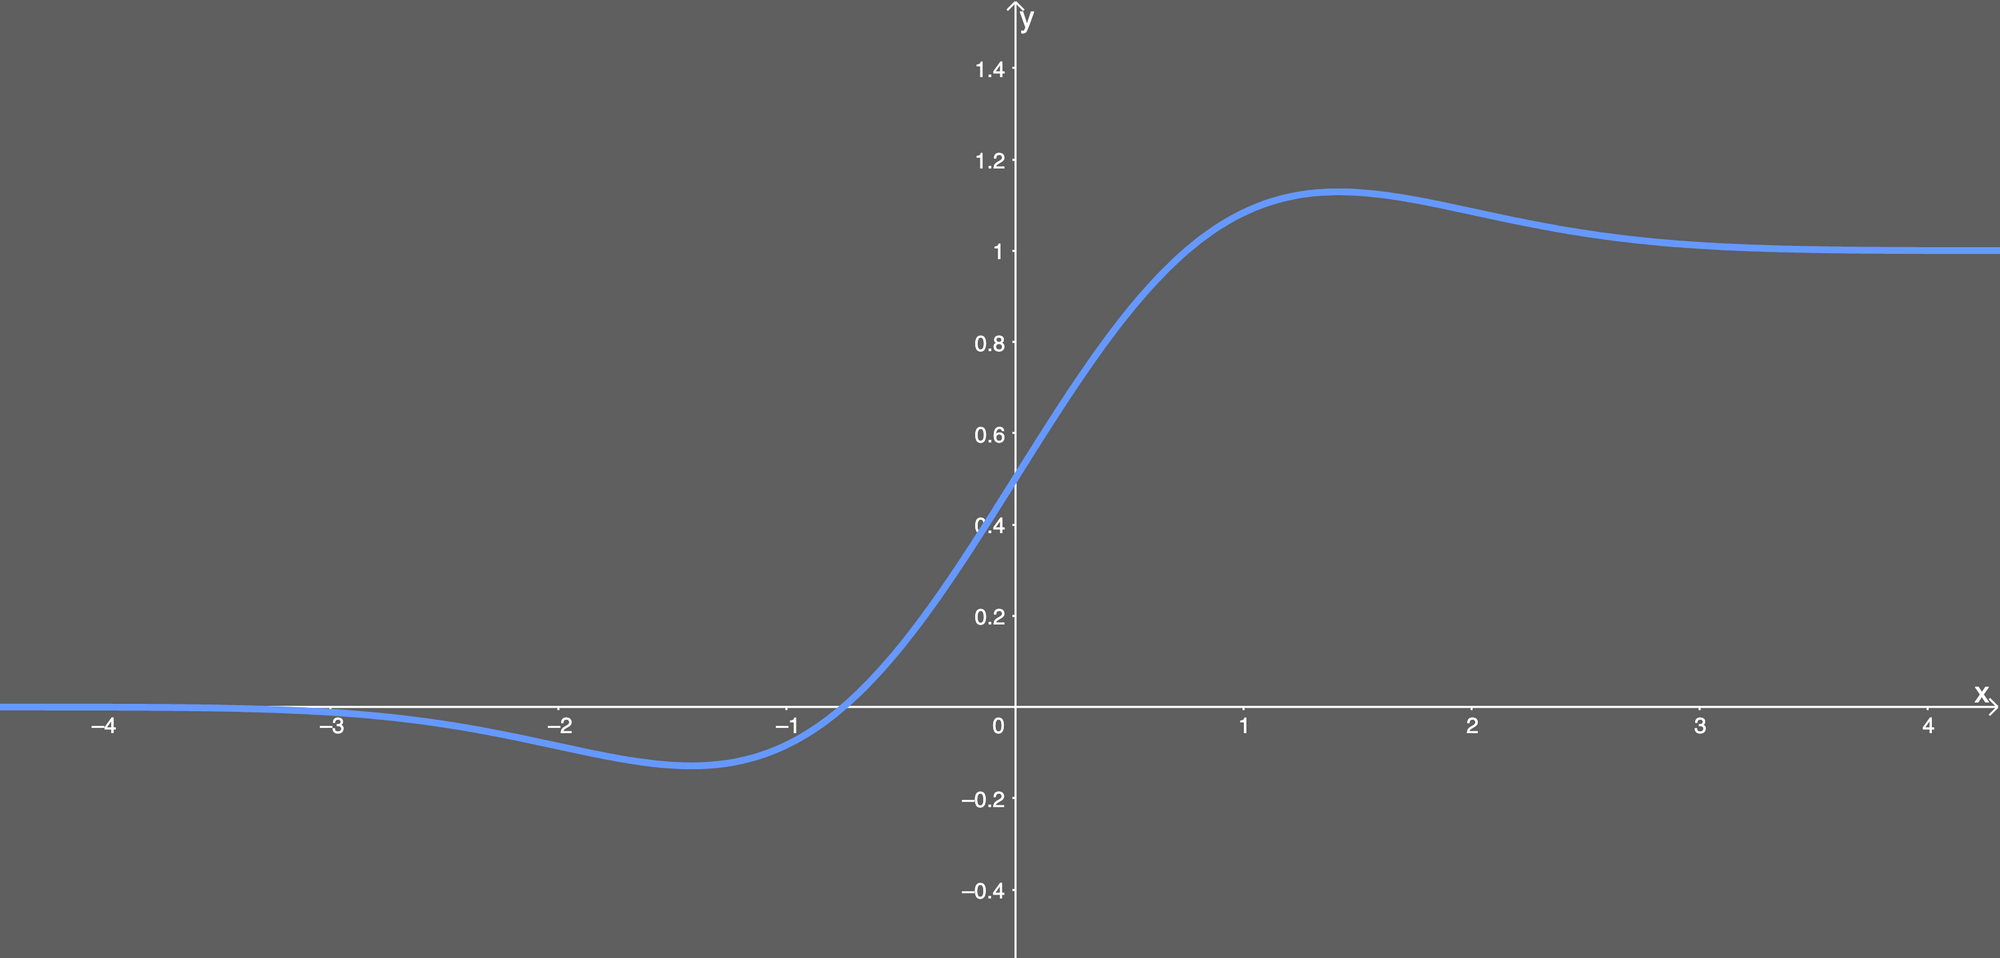 the gelu activation function differentiated and plotted